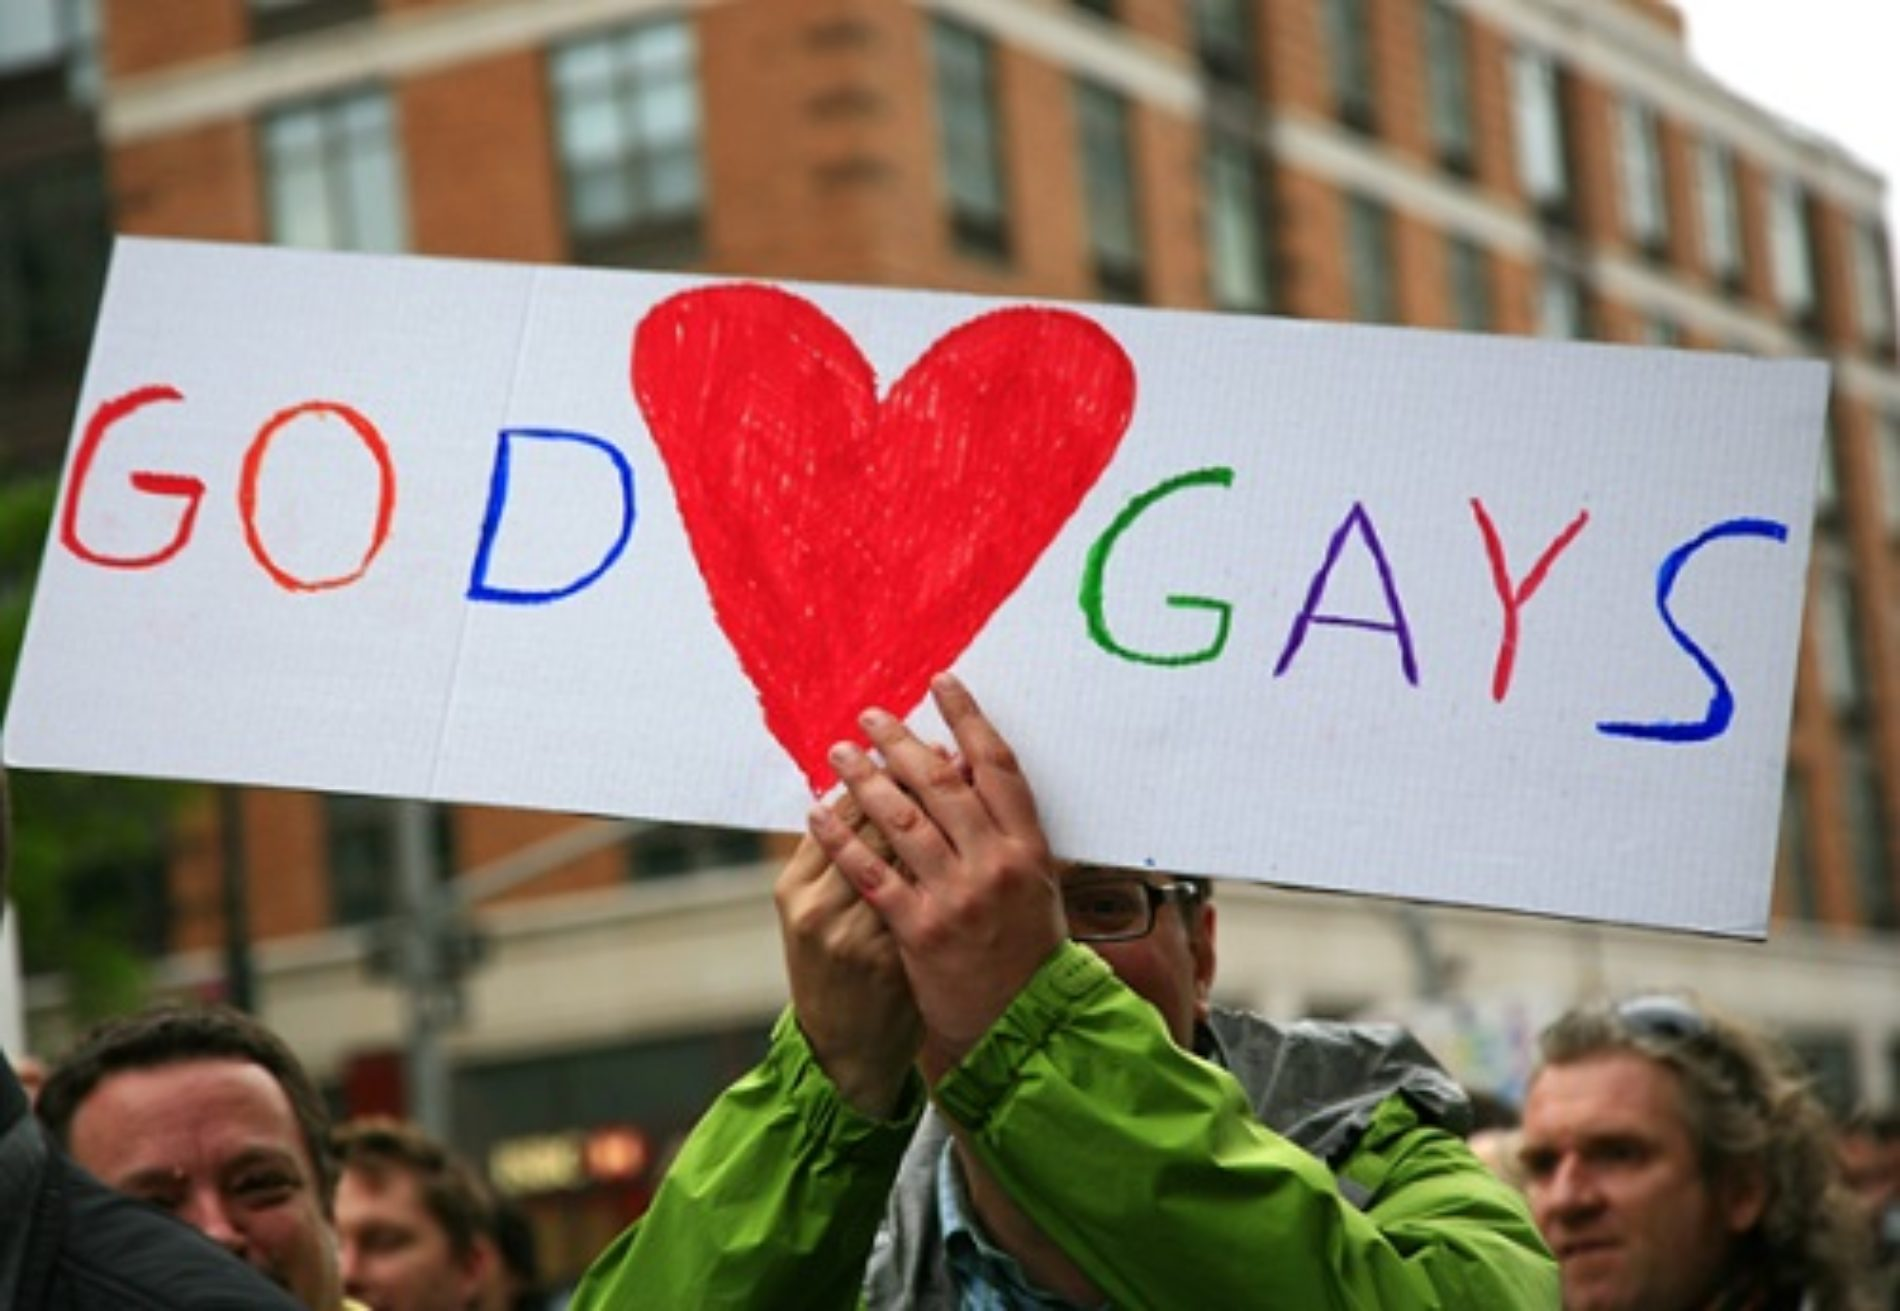 Does God Hate Homosexuals?